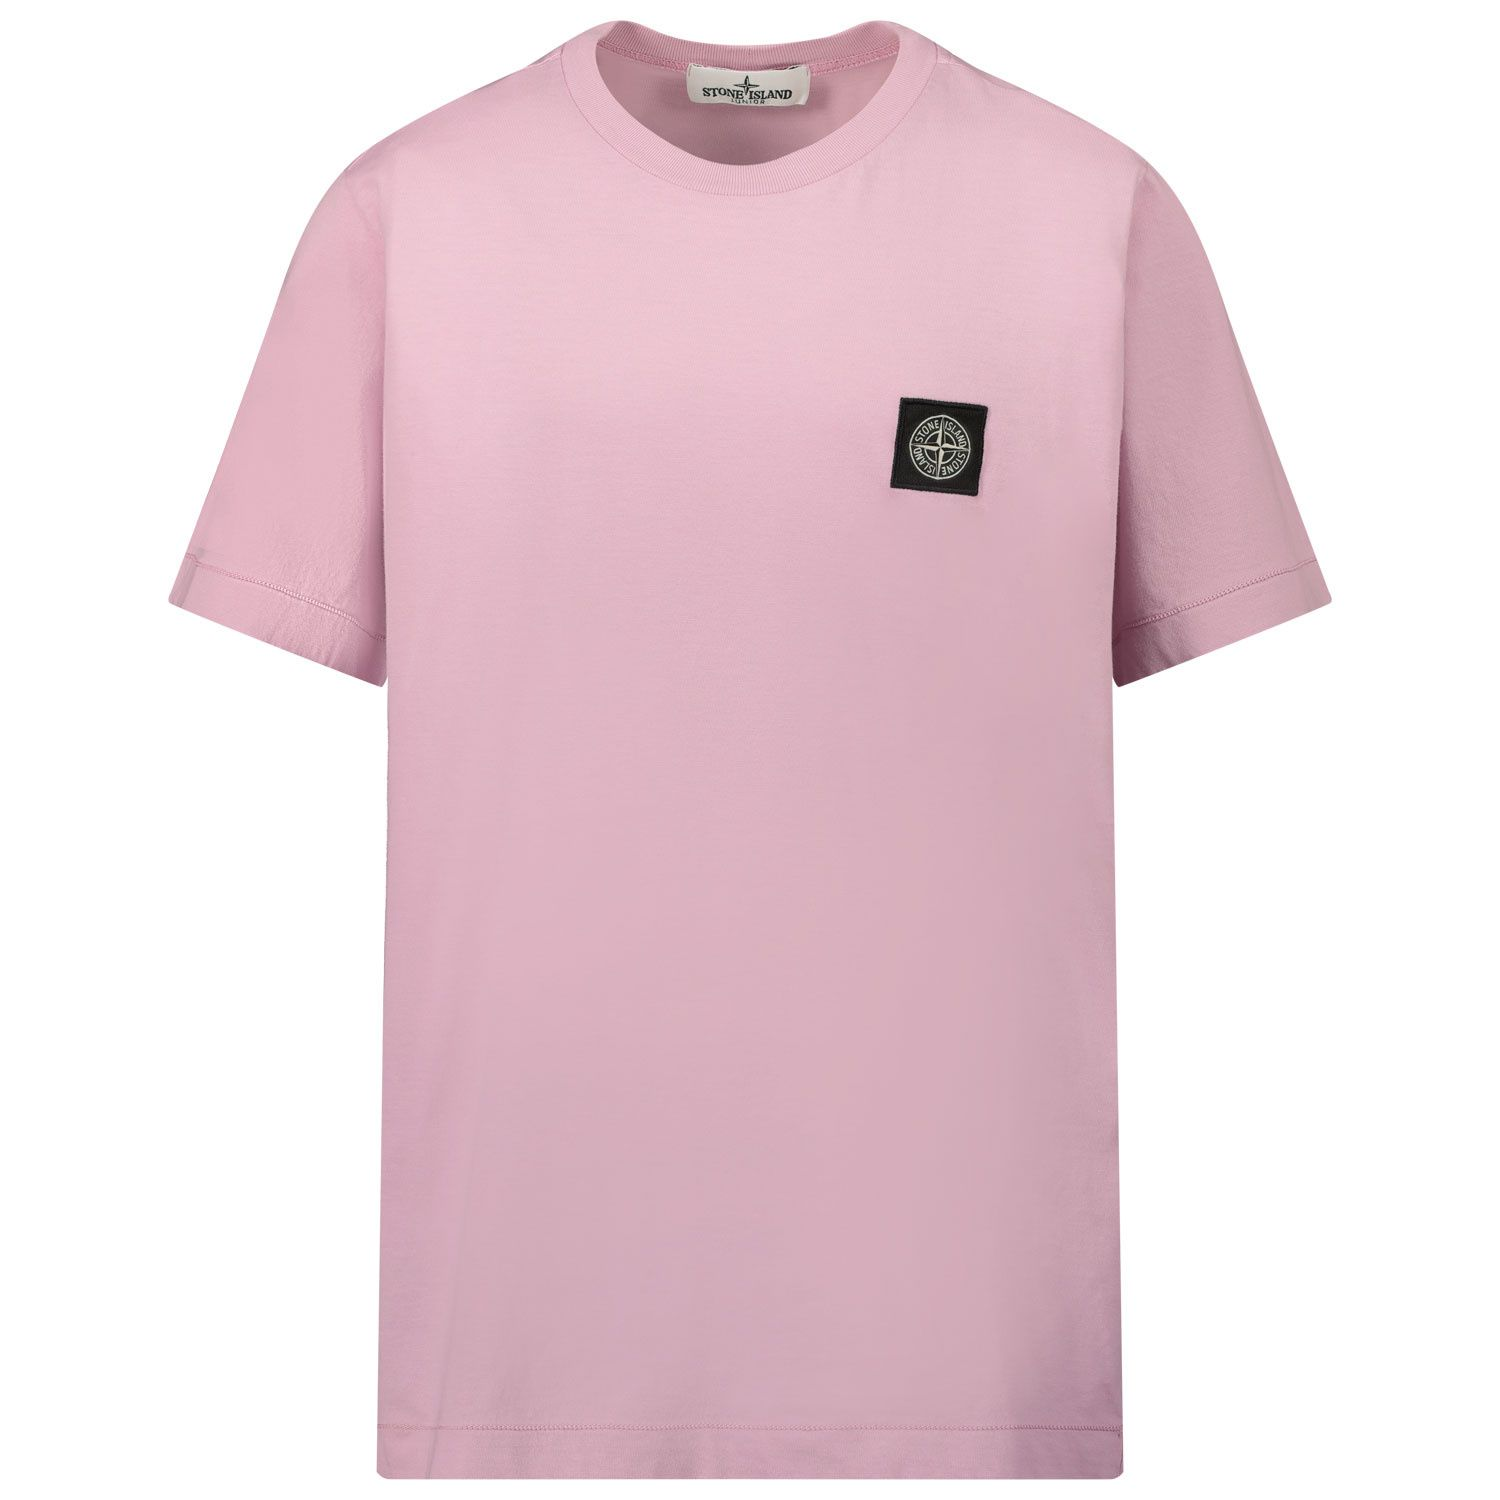 Picture of Stone Island 20147 kids t-shirt lilac